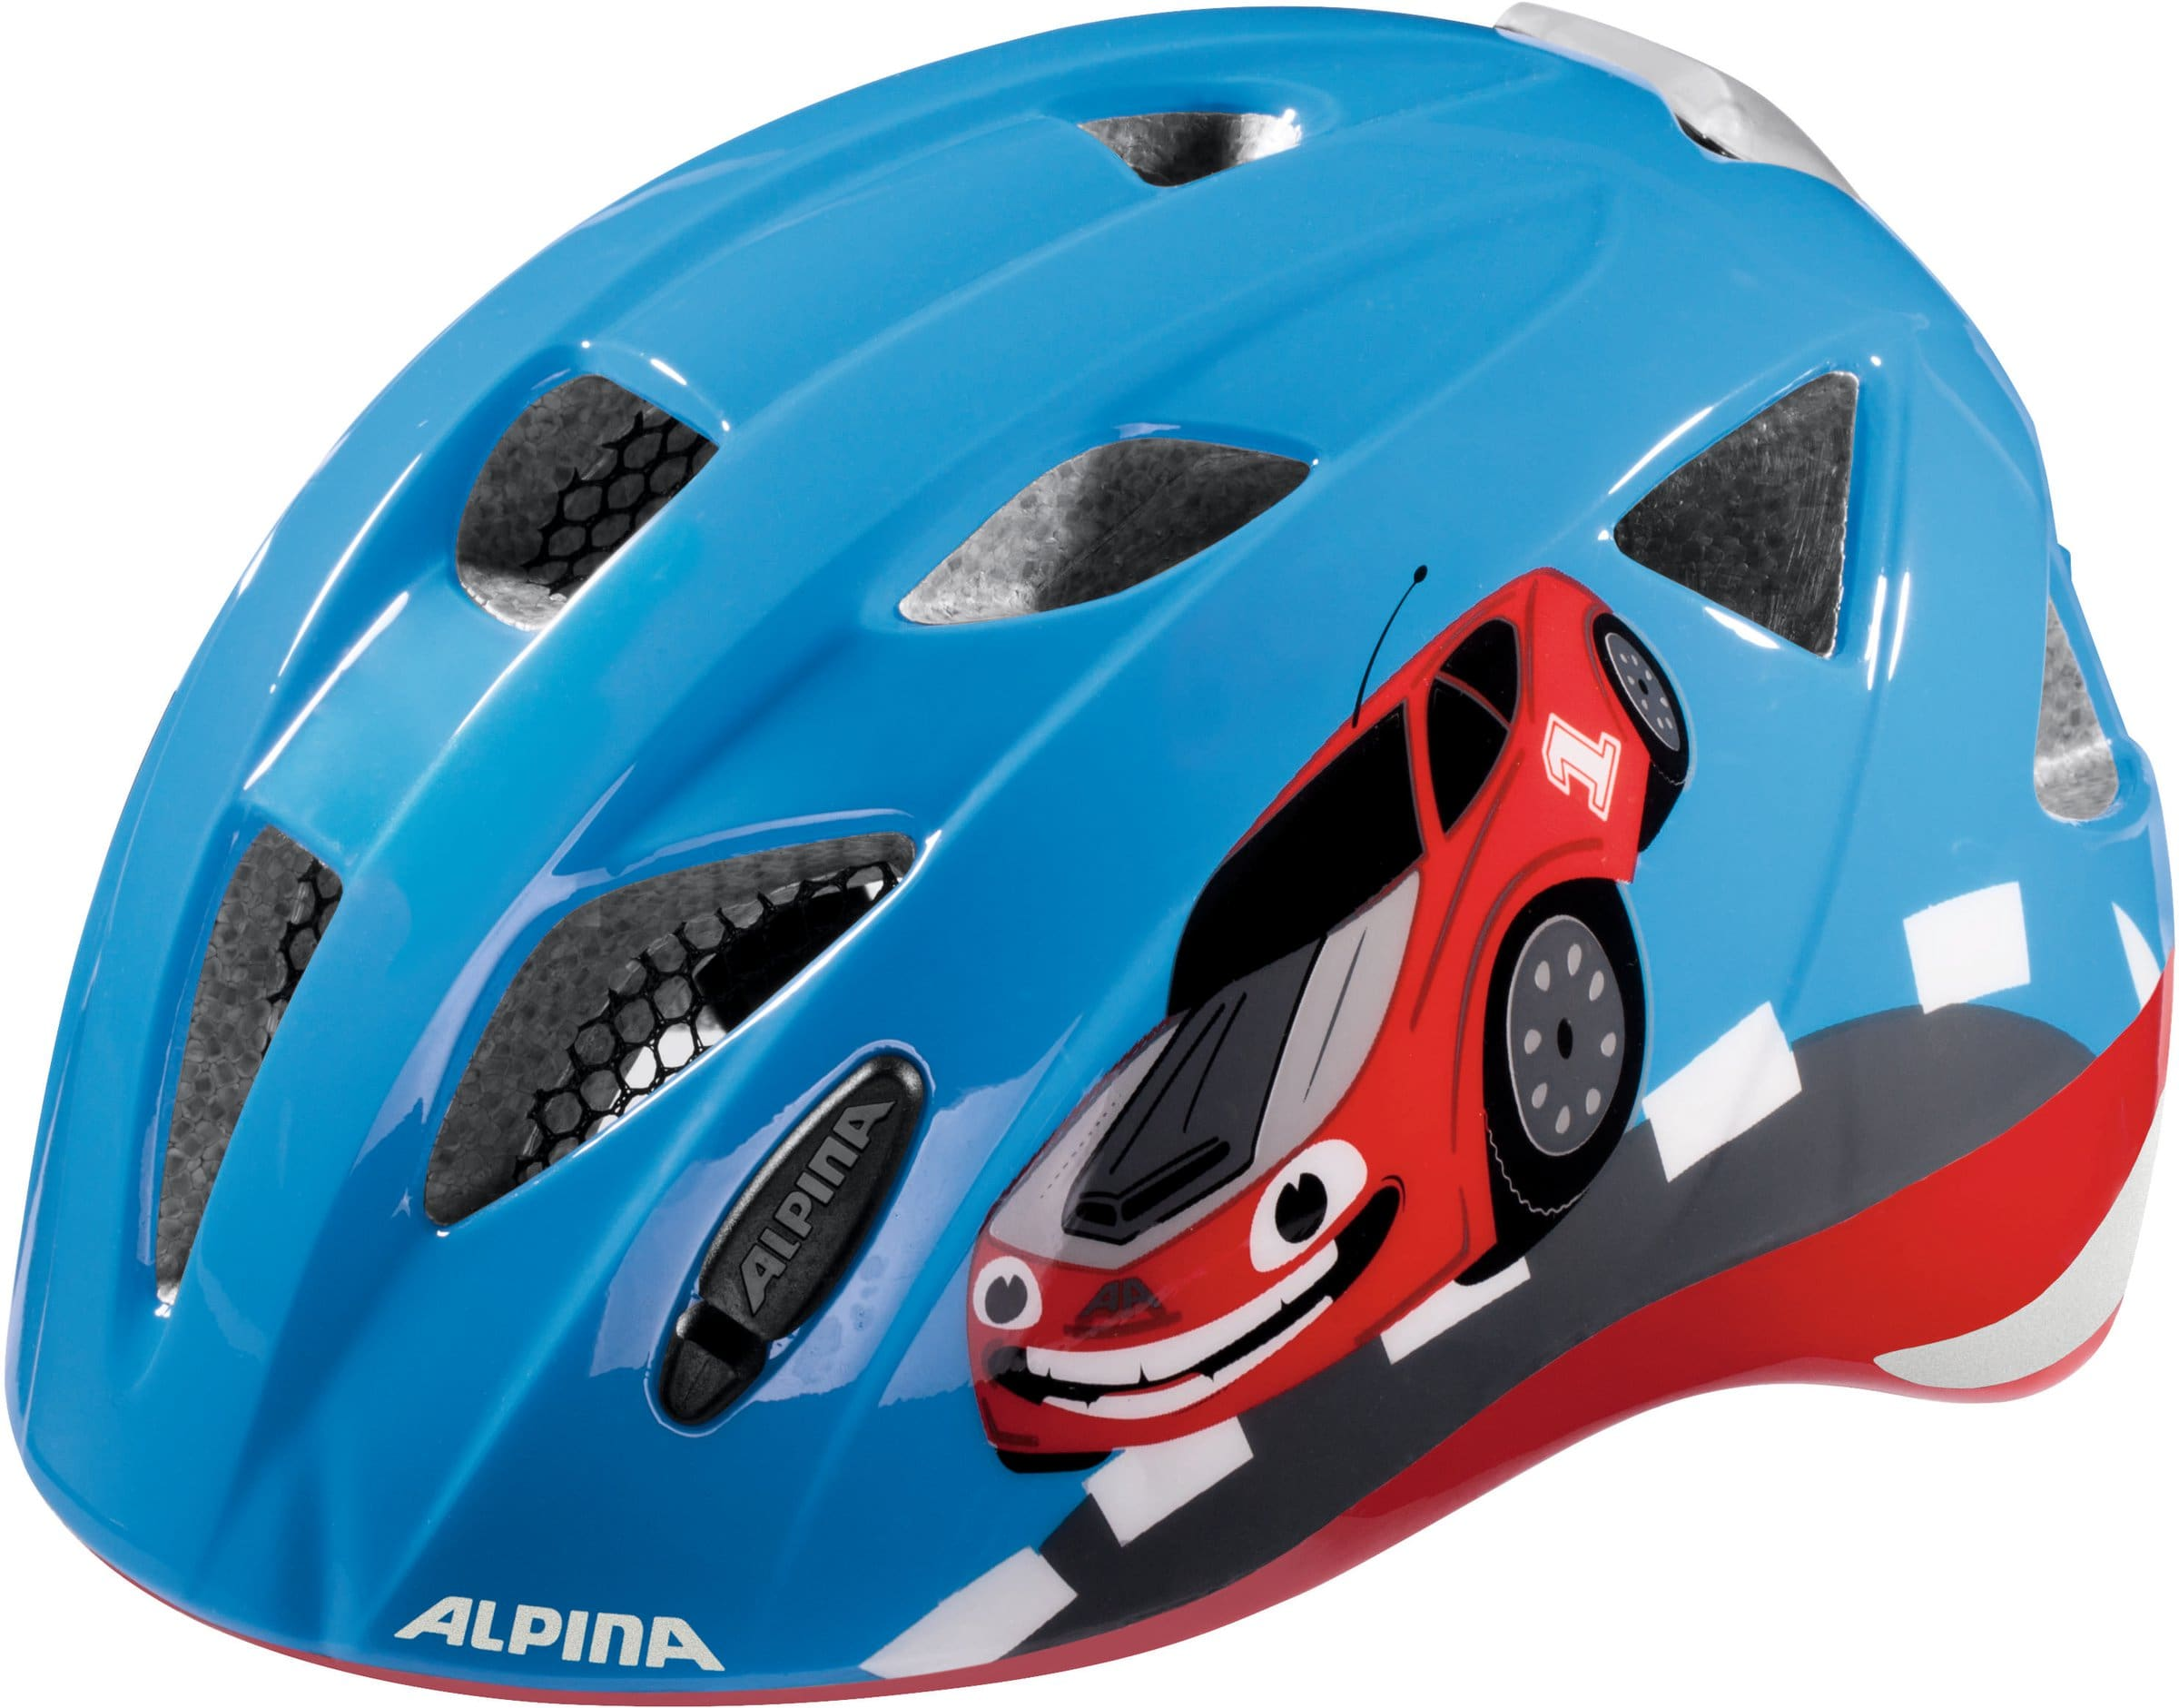 alpina ximo flash kinder fahrradhelm migros. Black Bedroom Furniture Sets. Home Design Ideas